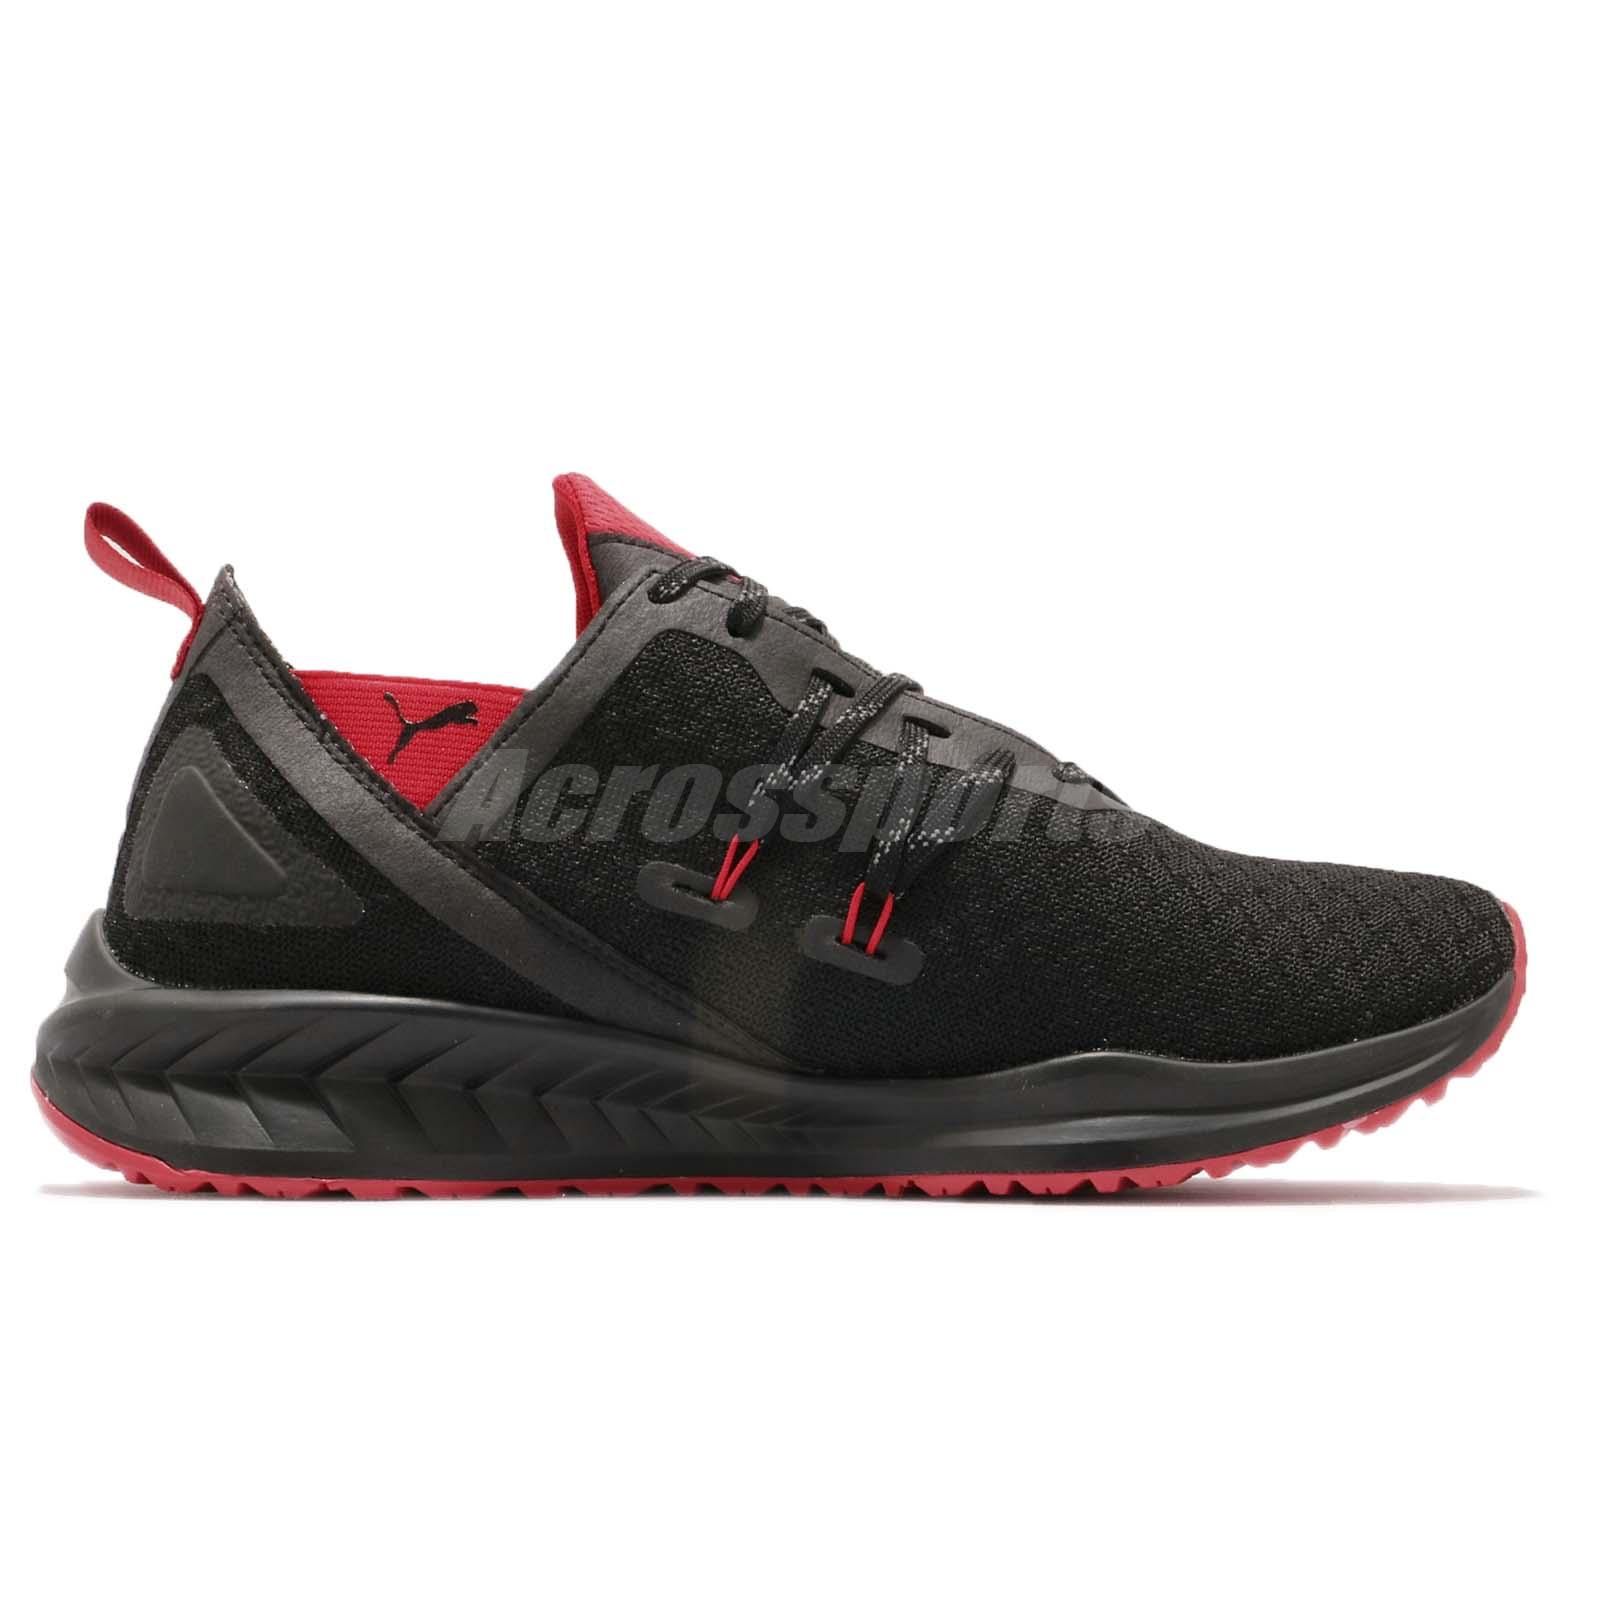 e2a586d39593 ... PUMA BLACK-RIBBON RED. Made In  Vietnam. Condition  Brand New With Box